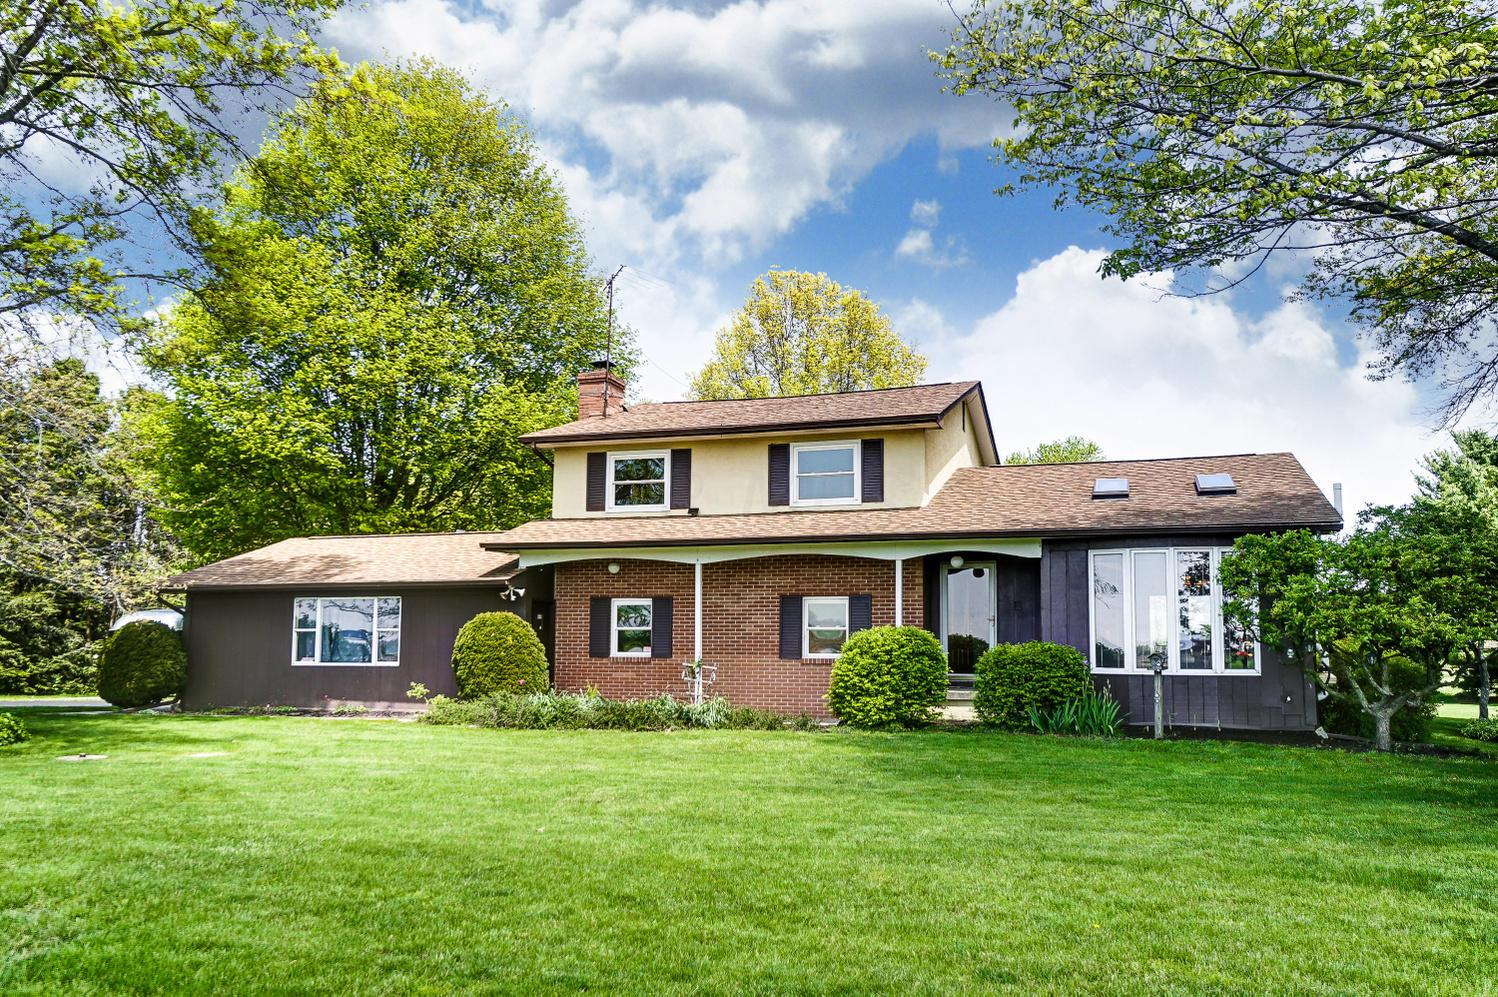 Photo of 5776 London-Lancaster Road, Groveport, OH 43125